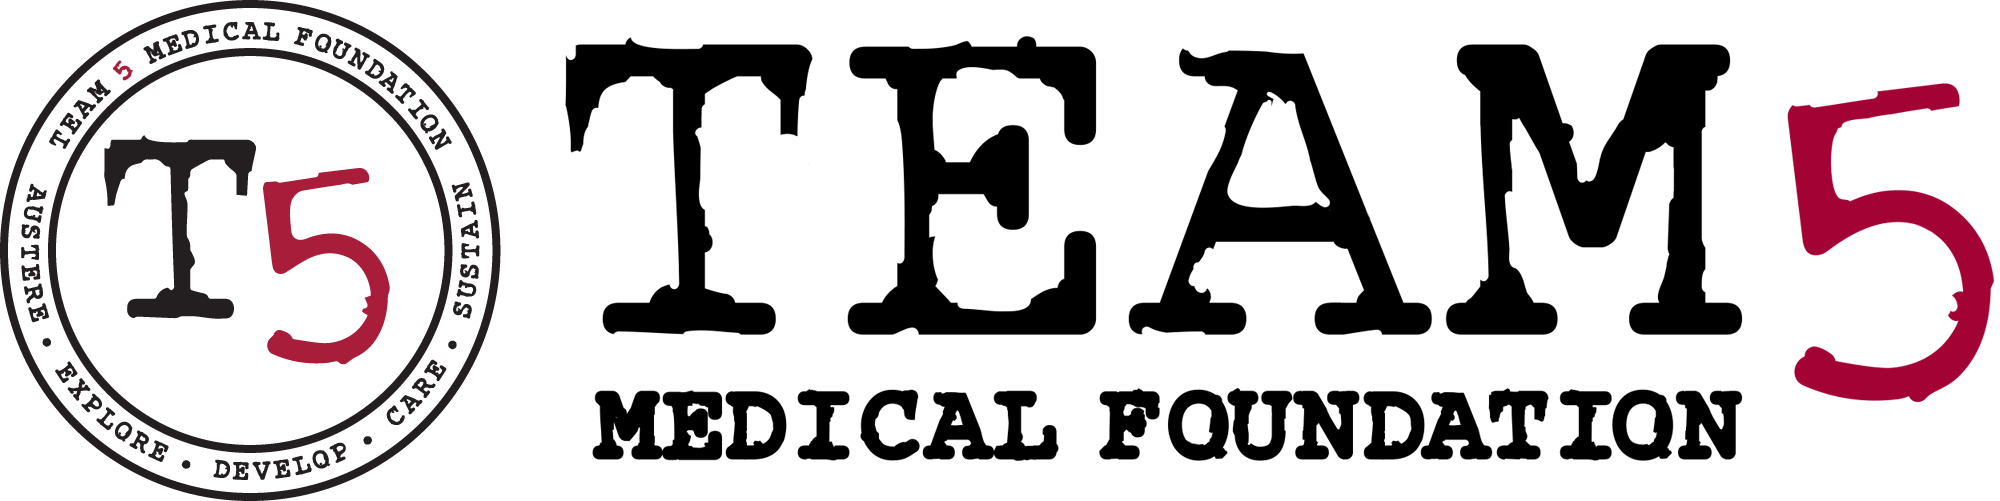 Team 5 Medical Foundation